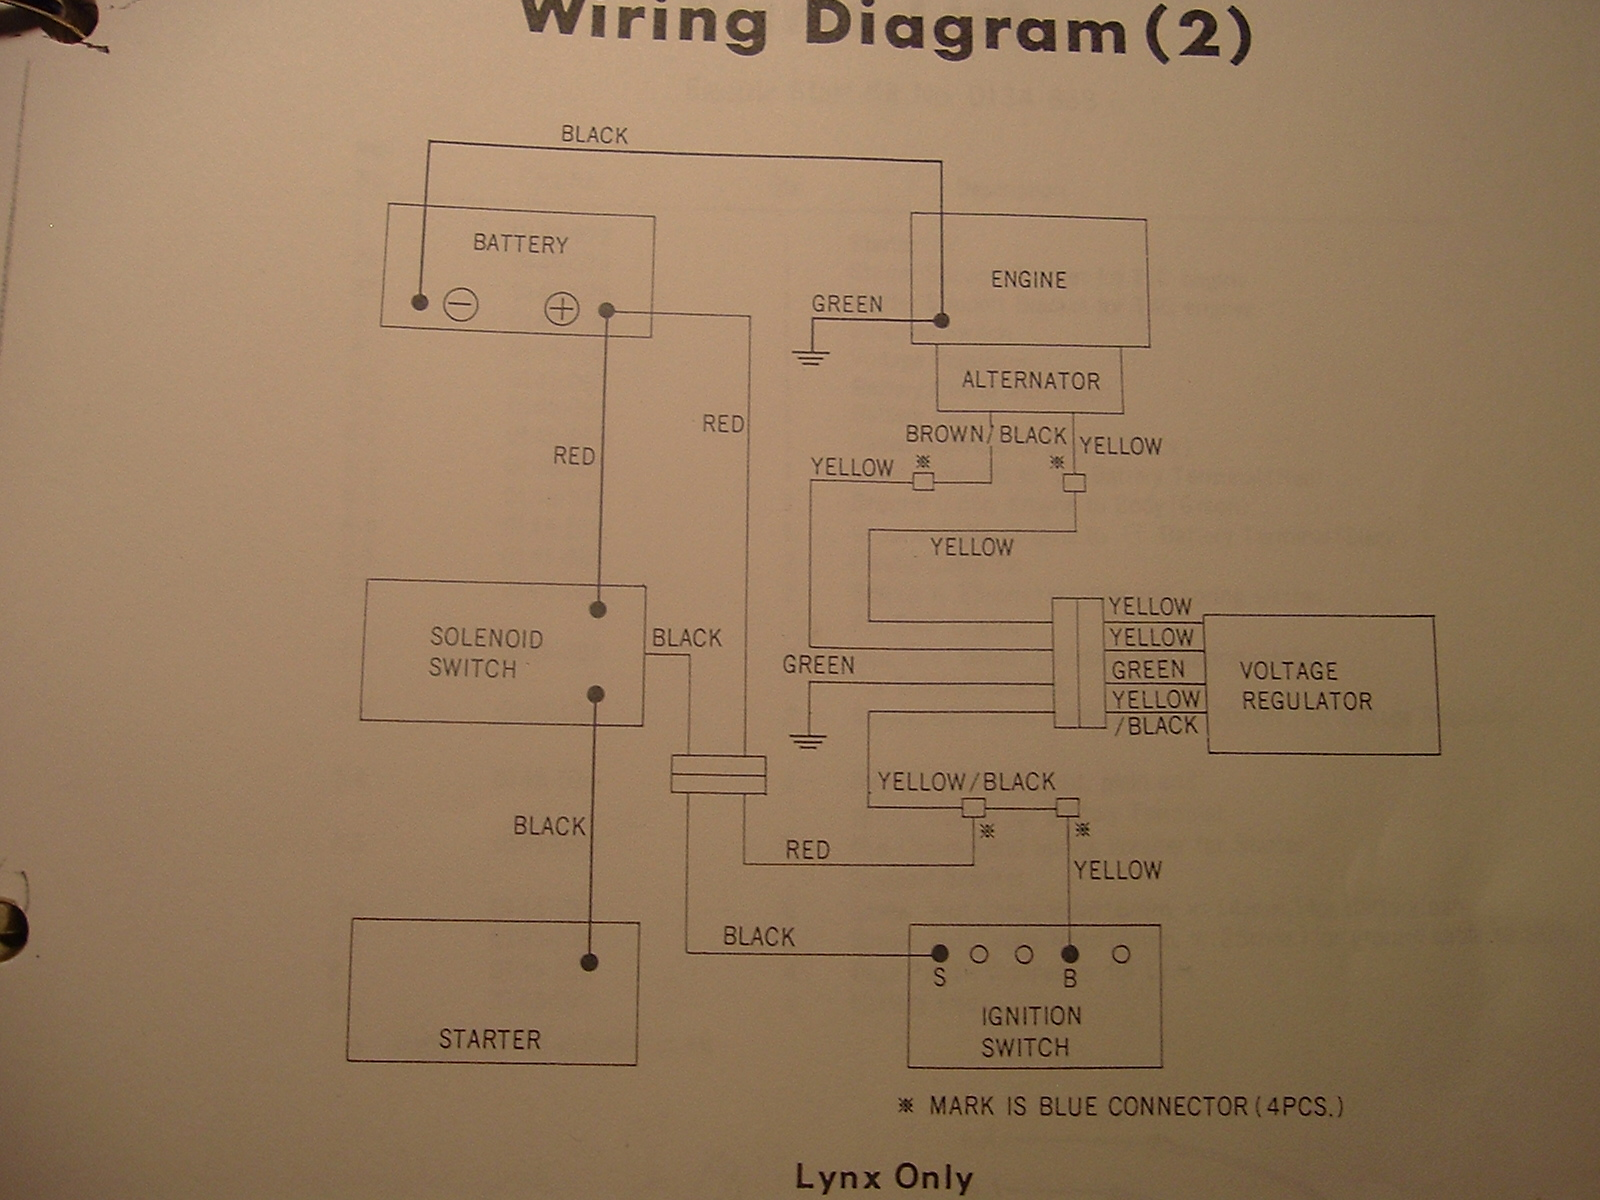 hight resolution of arctic cat spirit 440 wiring diagram wiring diagram used wiring diagram arctic cat spirit